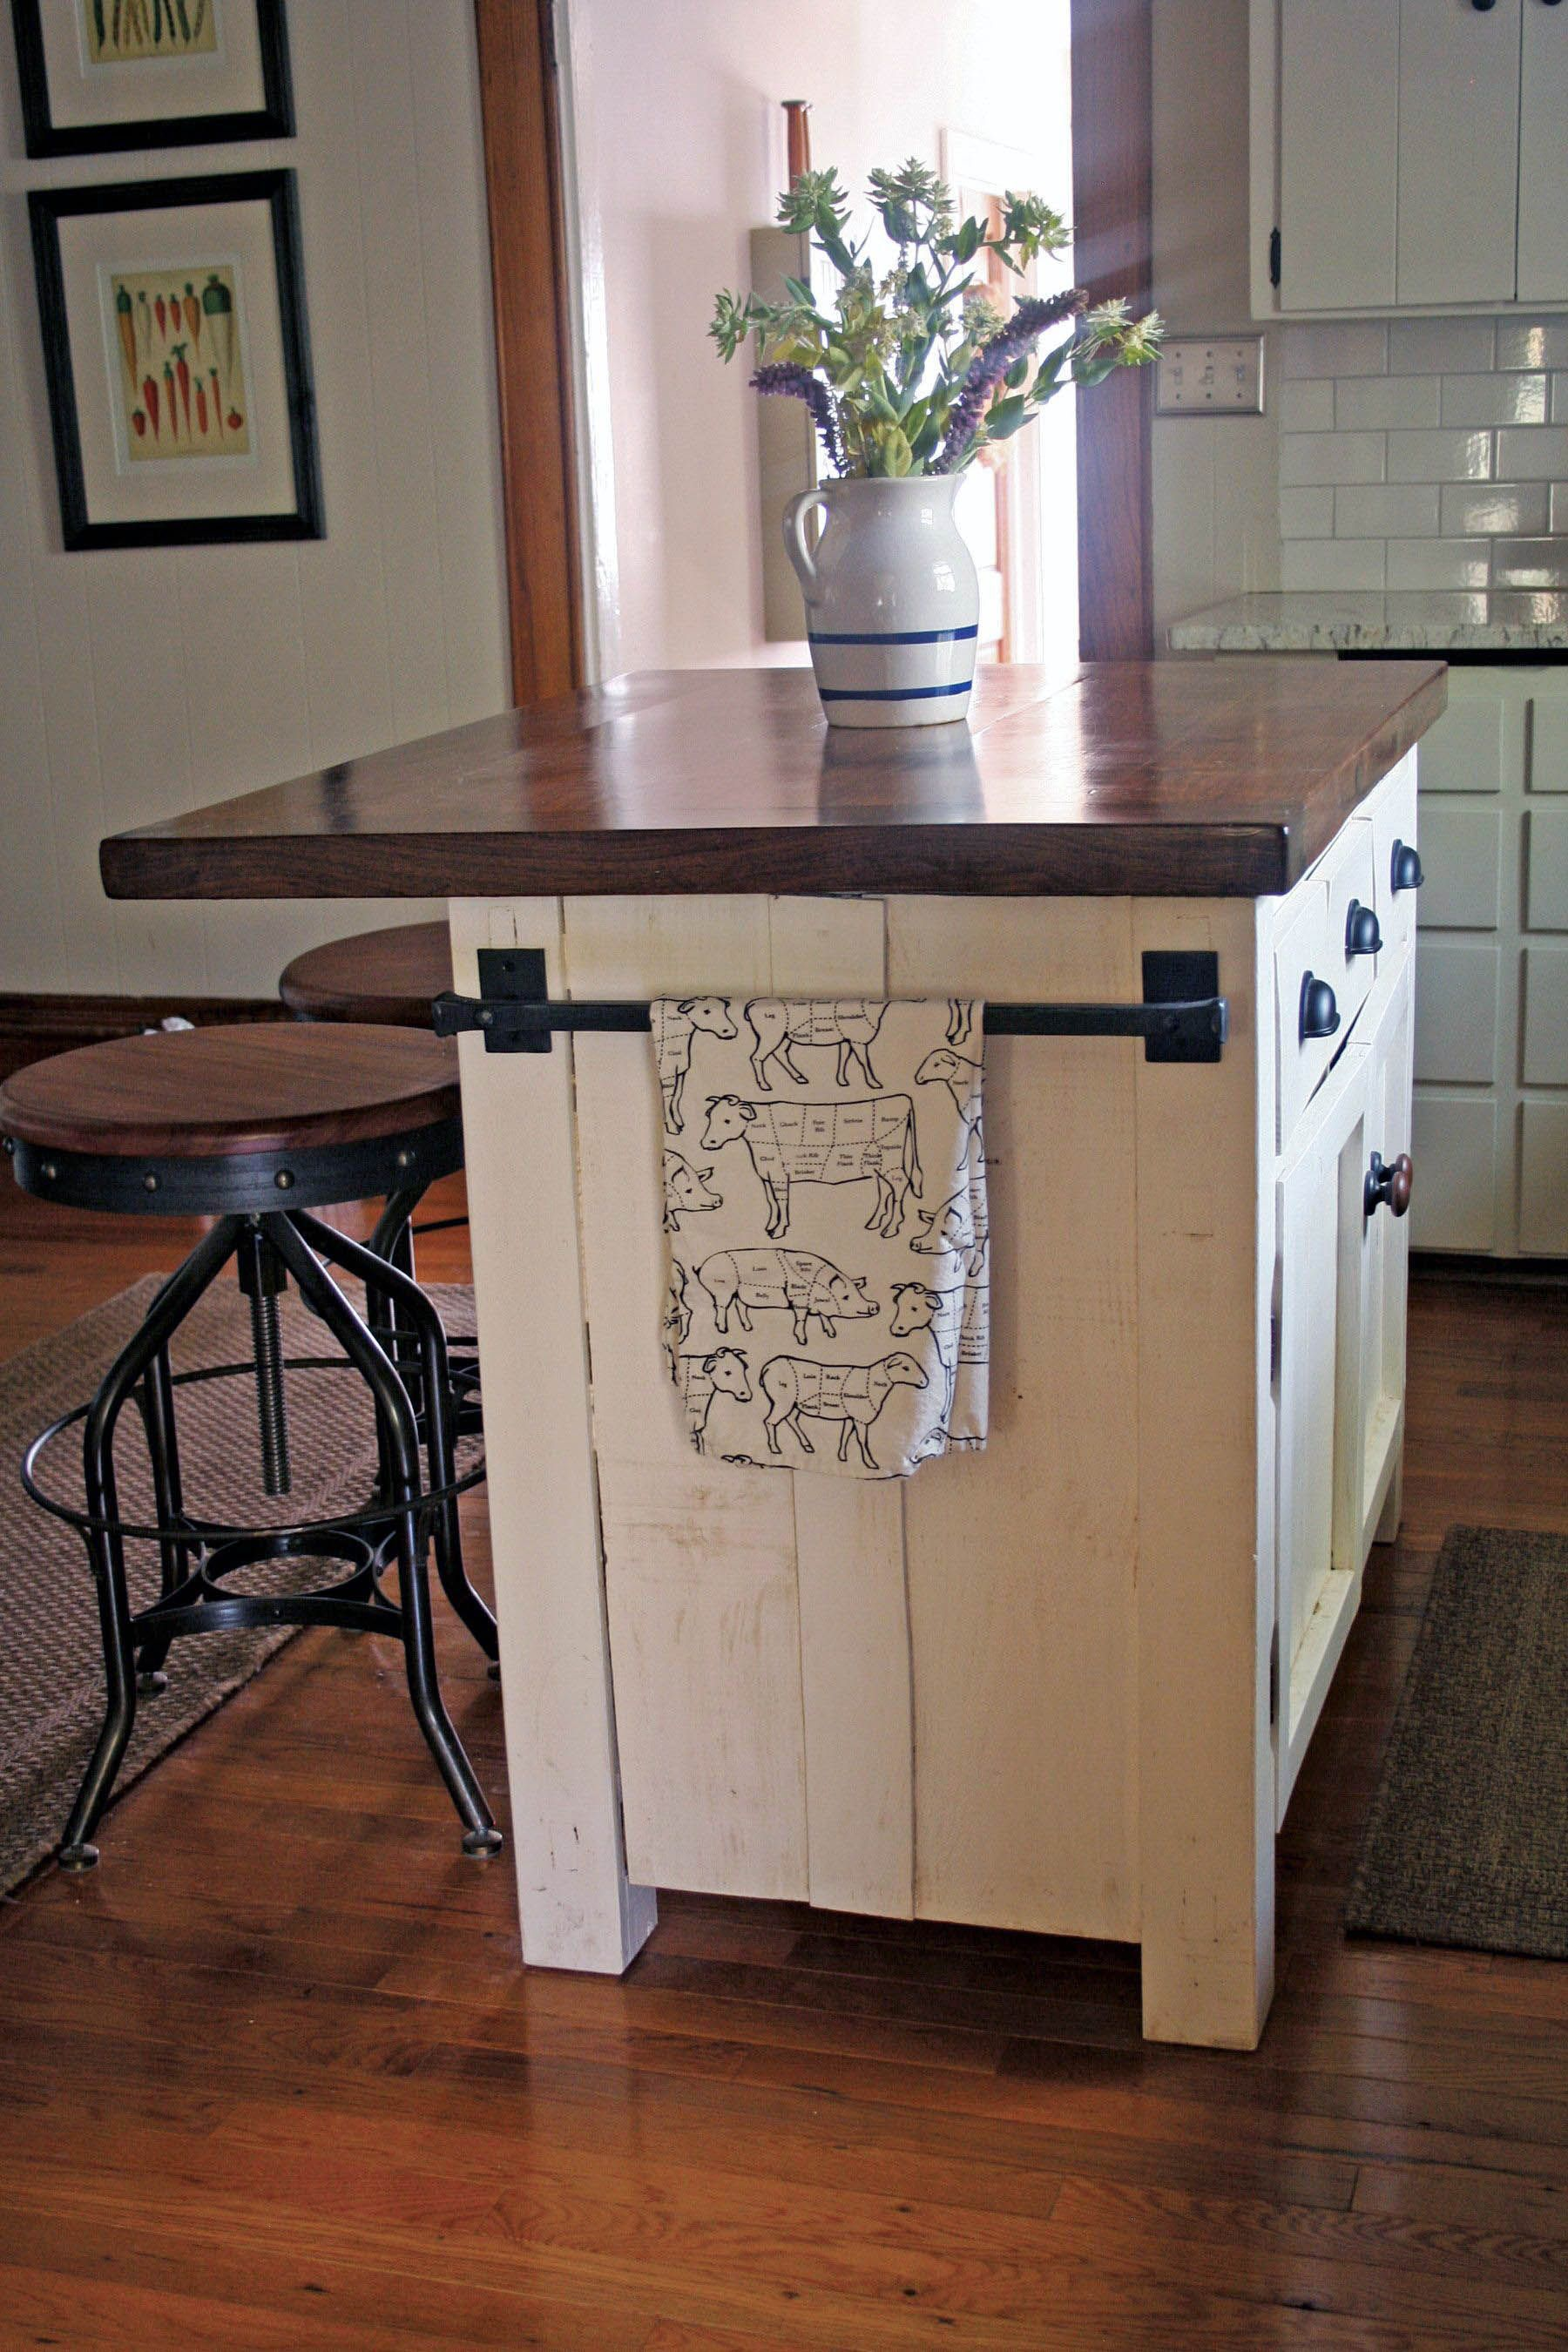 New How To Build A Portable Kitchen Island Using Base Cabinets Exclusive On Shopy Home Decor Kitchen Island With Seating Kitchen Island Design Diy Kitchen